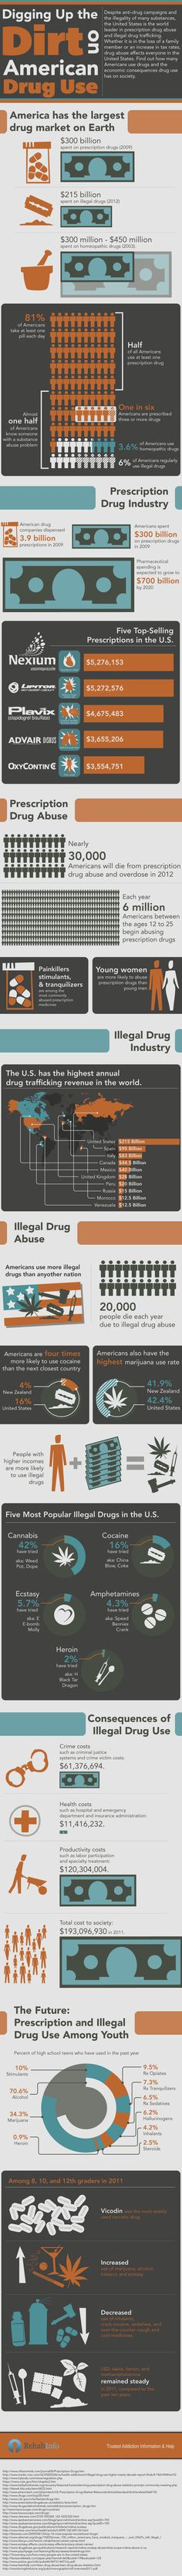 Prescription and Illegal Drug Use in America: